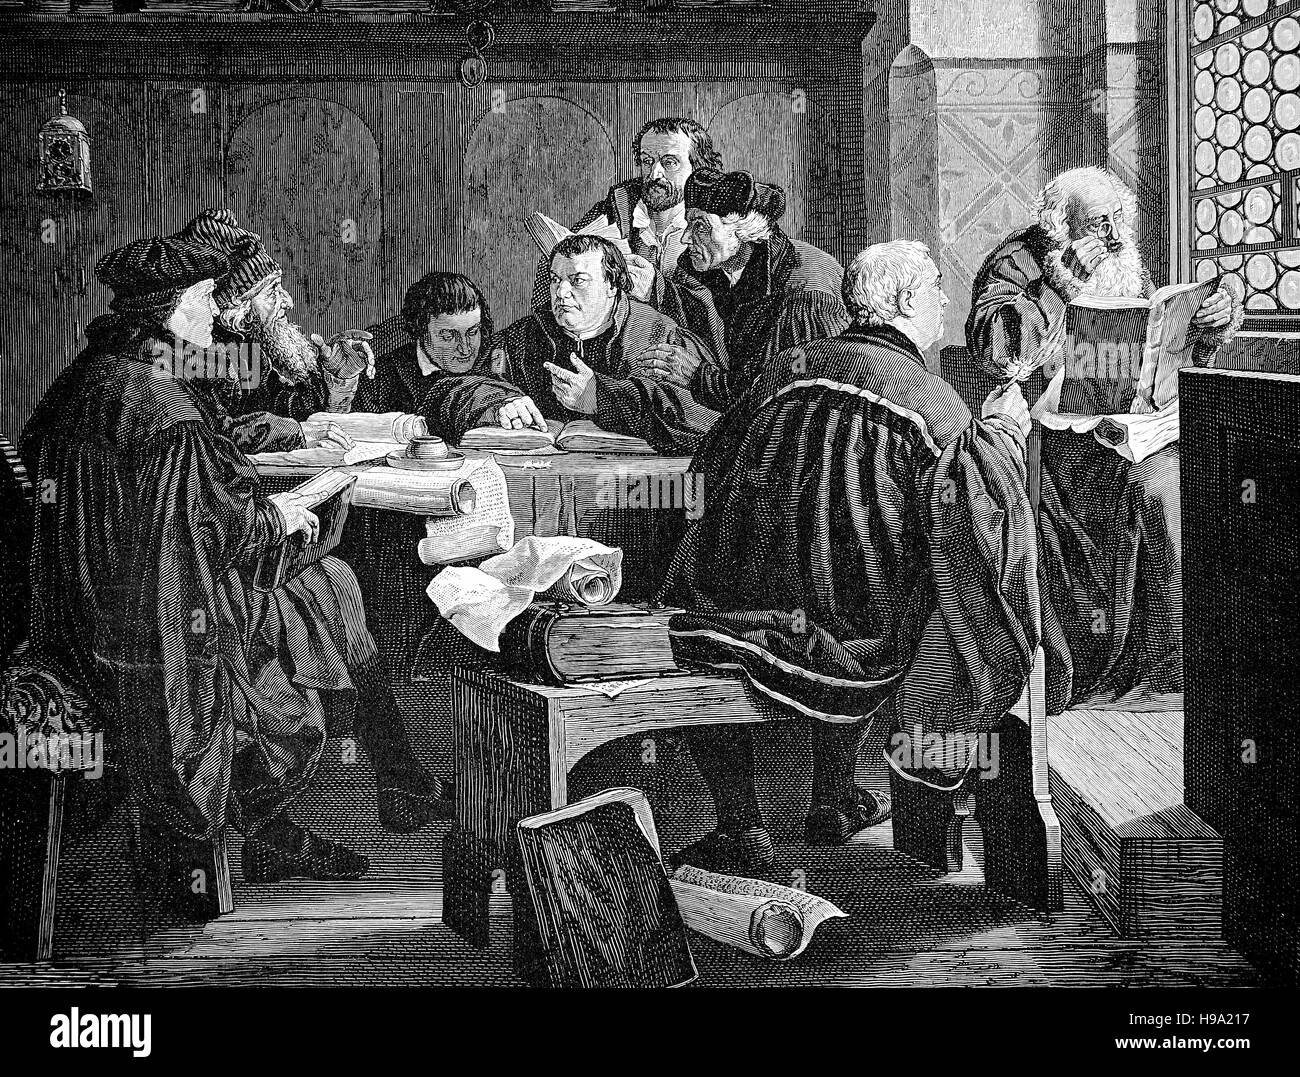 Martin Luther interprets the Bible, historical illustration - Stock Image